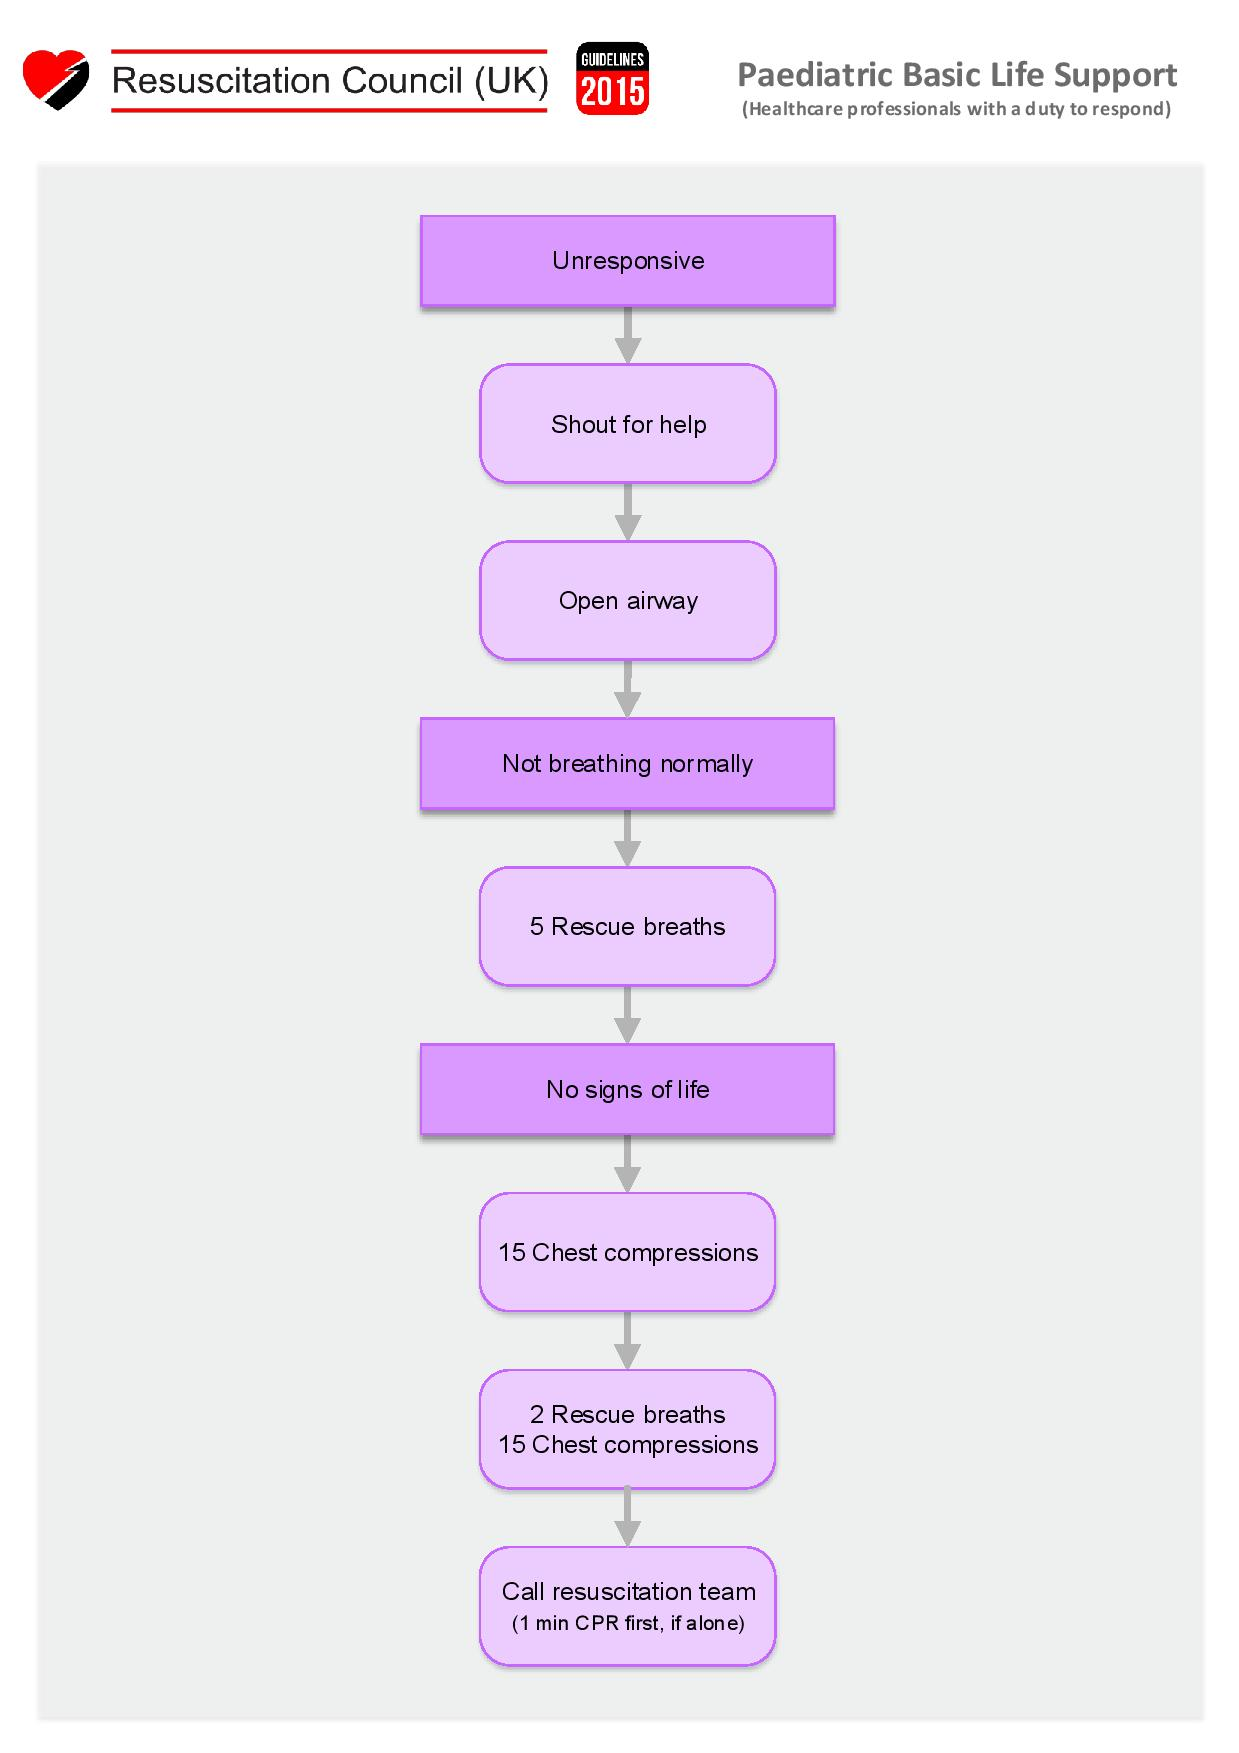 Paediatric Basic Life Support Algorithm